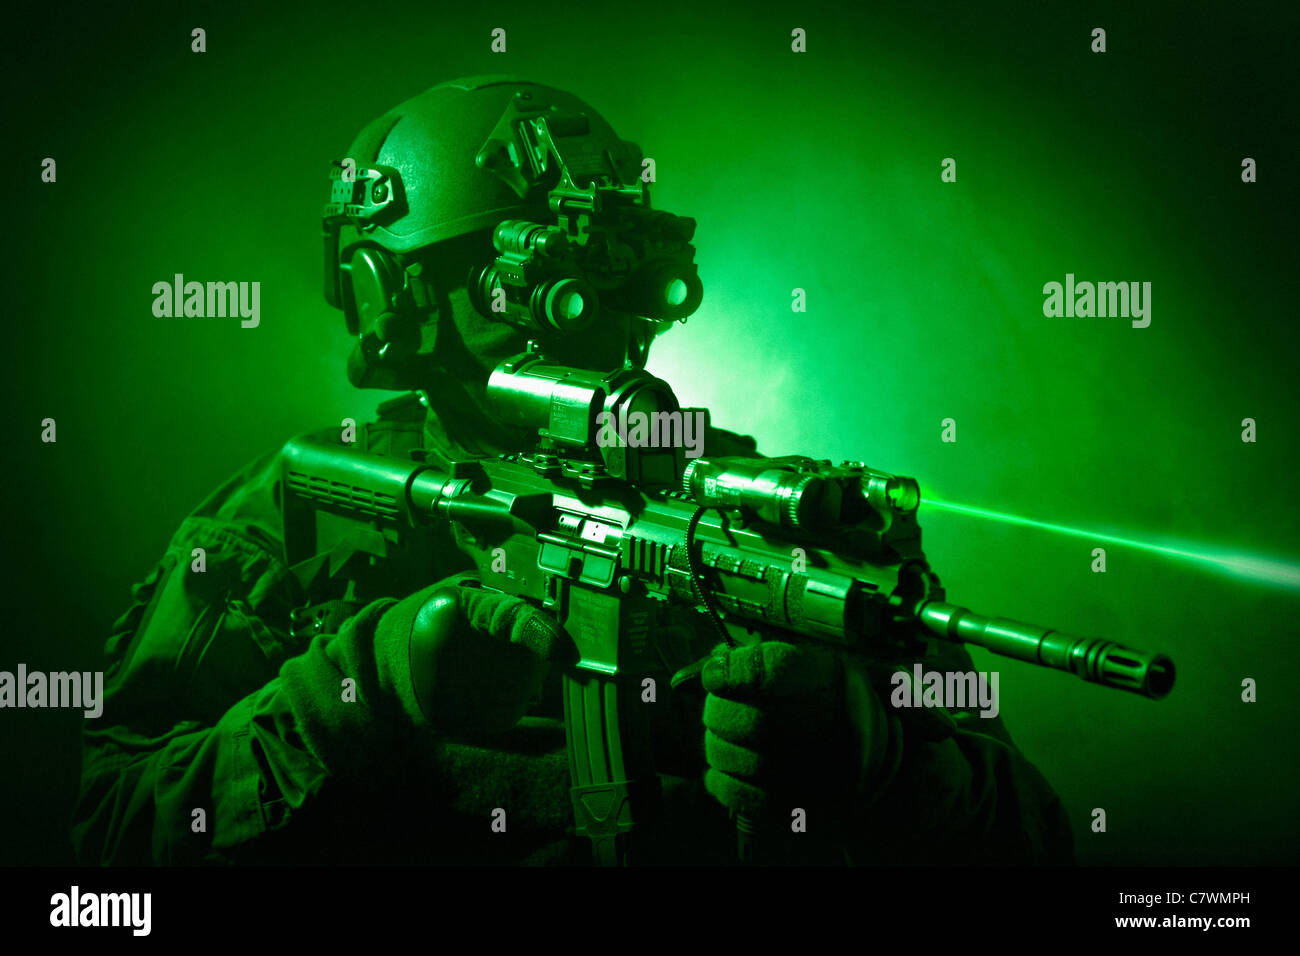 Special operations forces soldier equipped with night vision